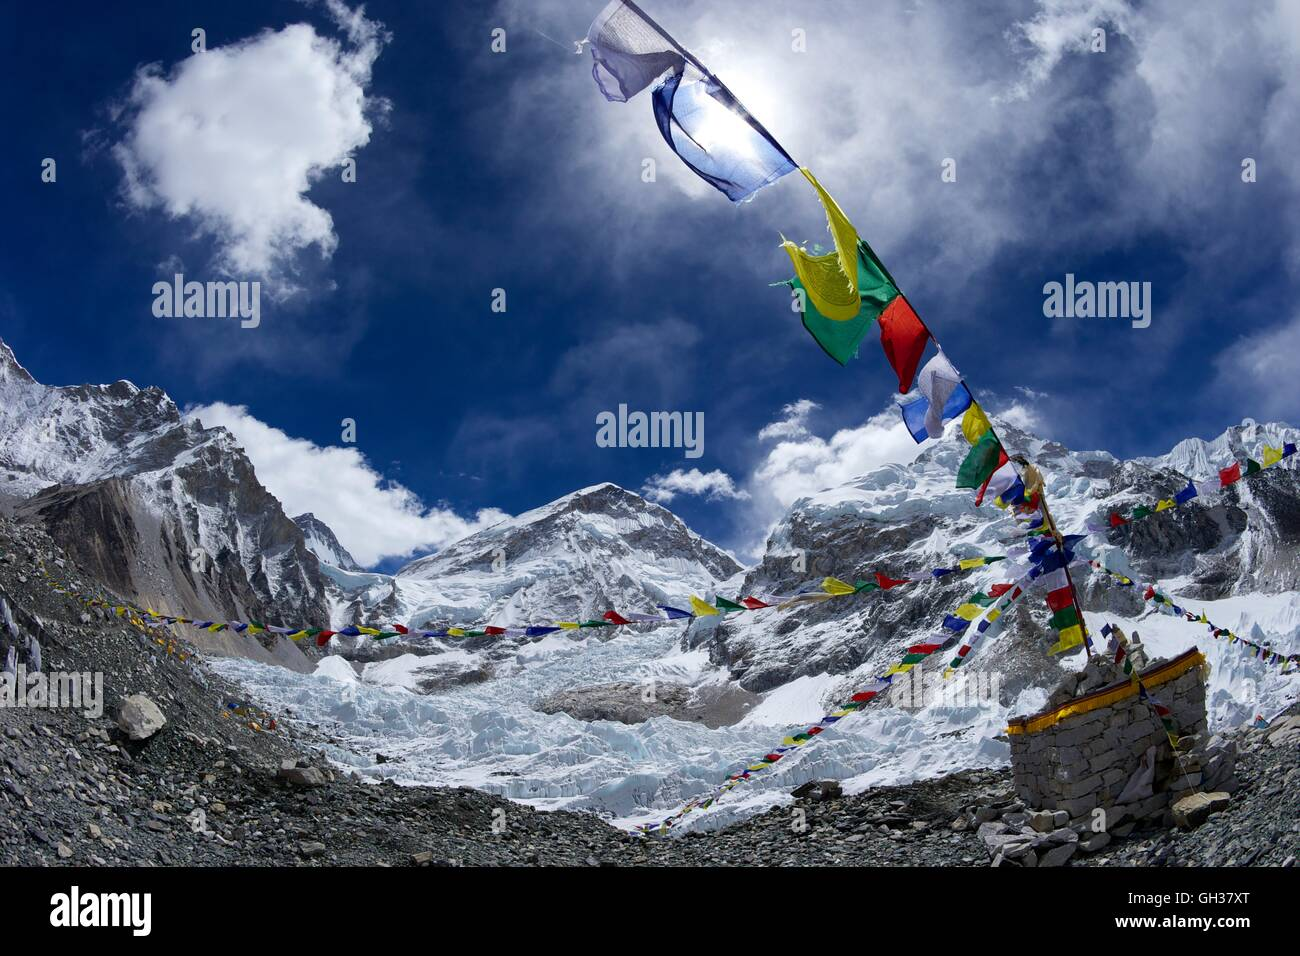 Khumbu icefall and glacier from Everest Base Camp, Sagarmatha National Park, Solukhumbu District, Nepal, Asia - Stock Image